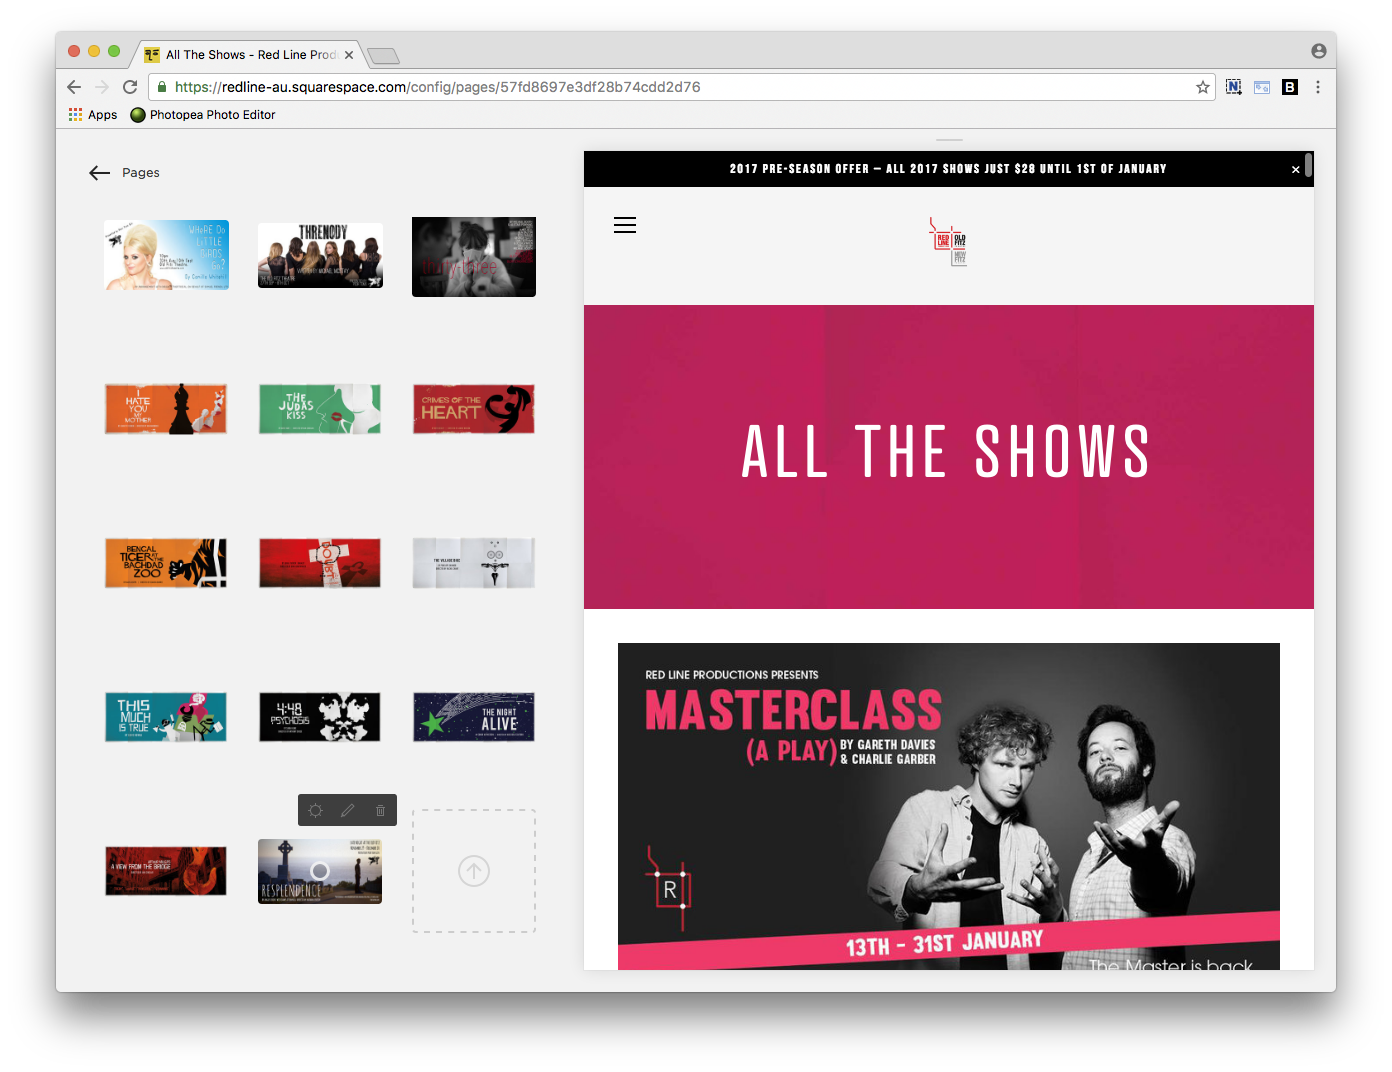 Click the ARROW icon to upload your image to the ALL THE SHOWS gallery.